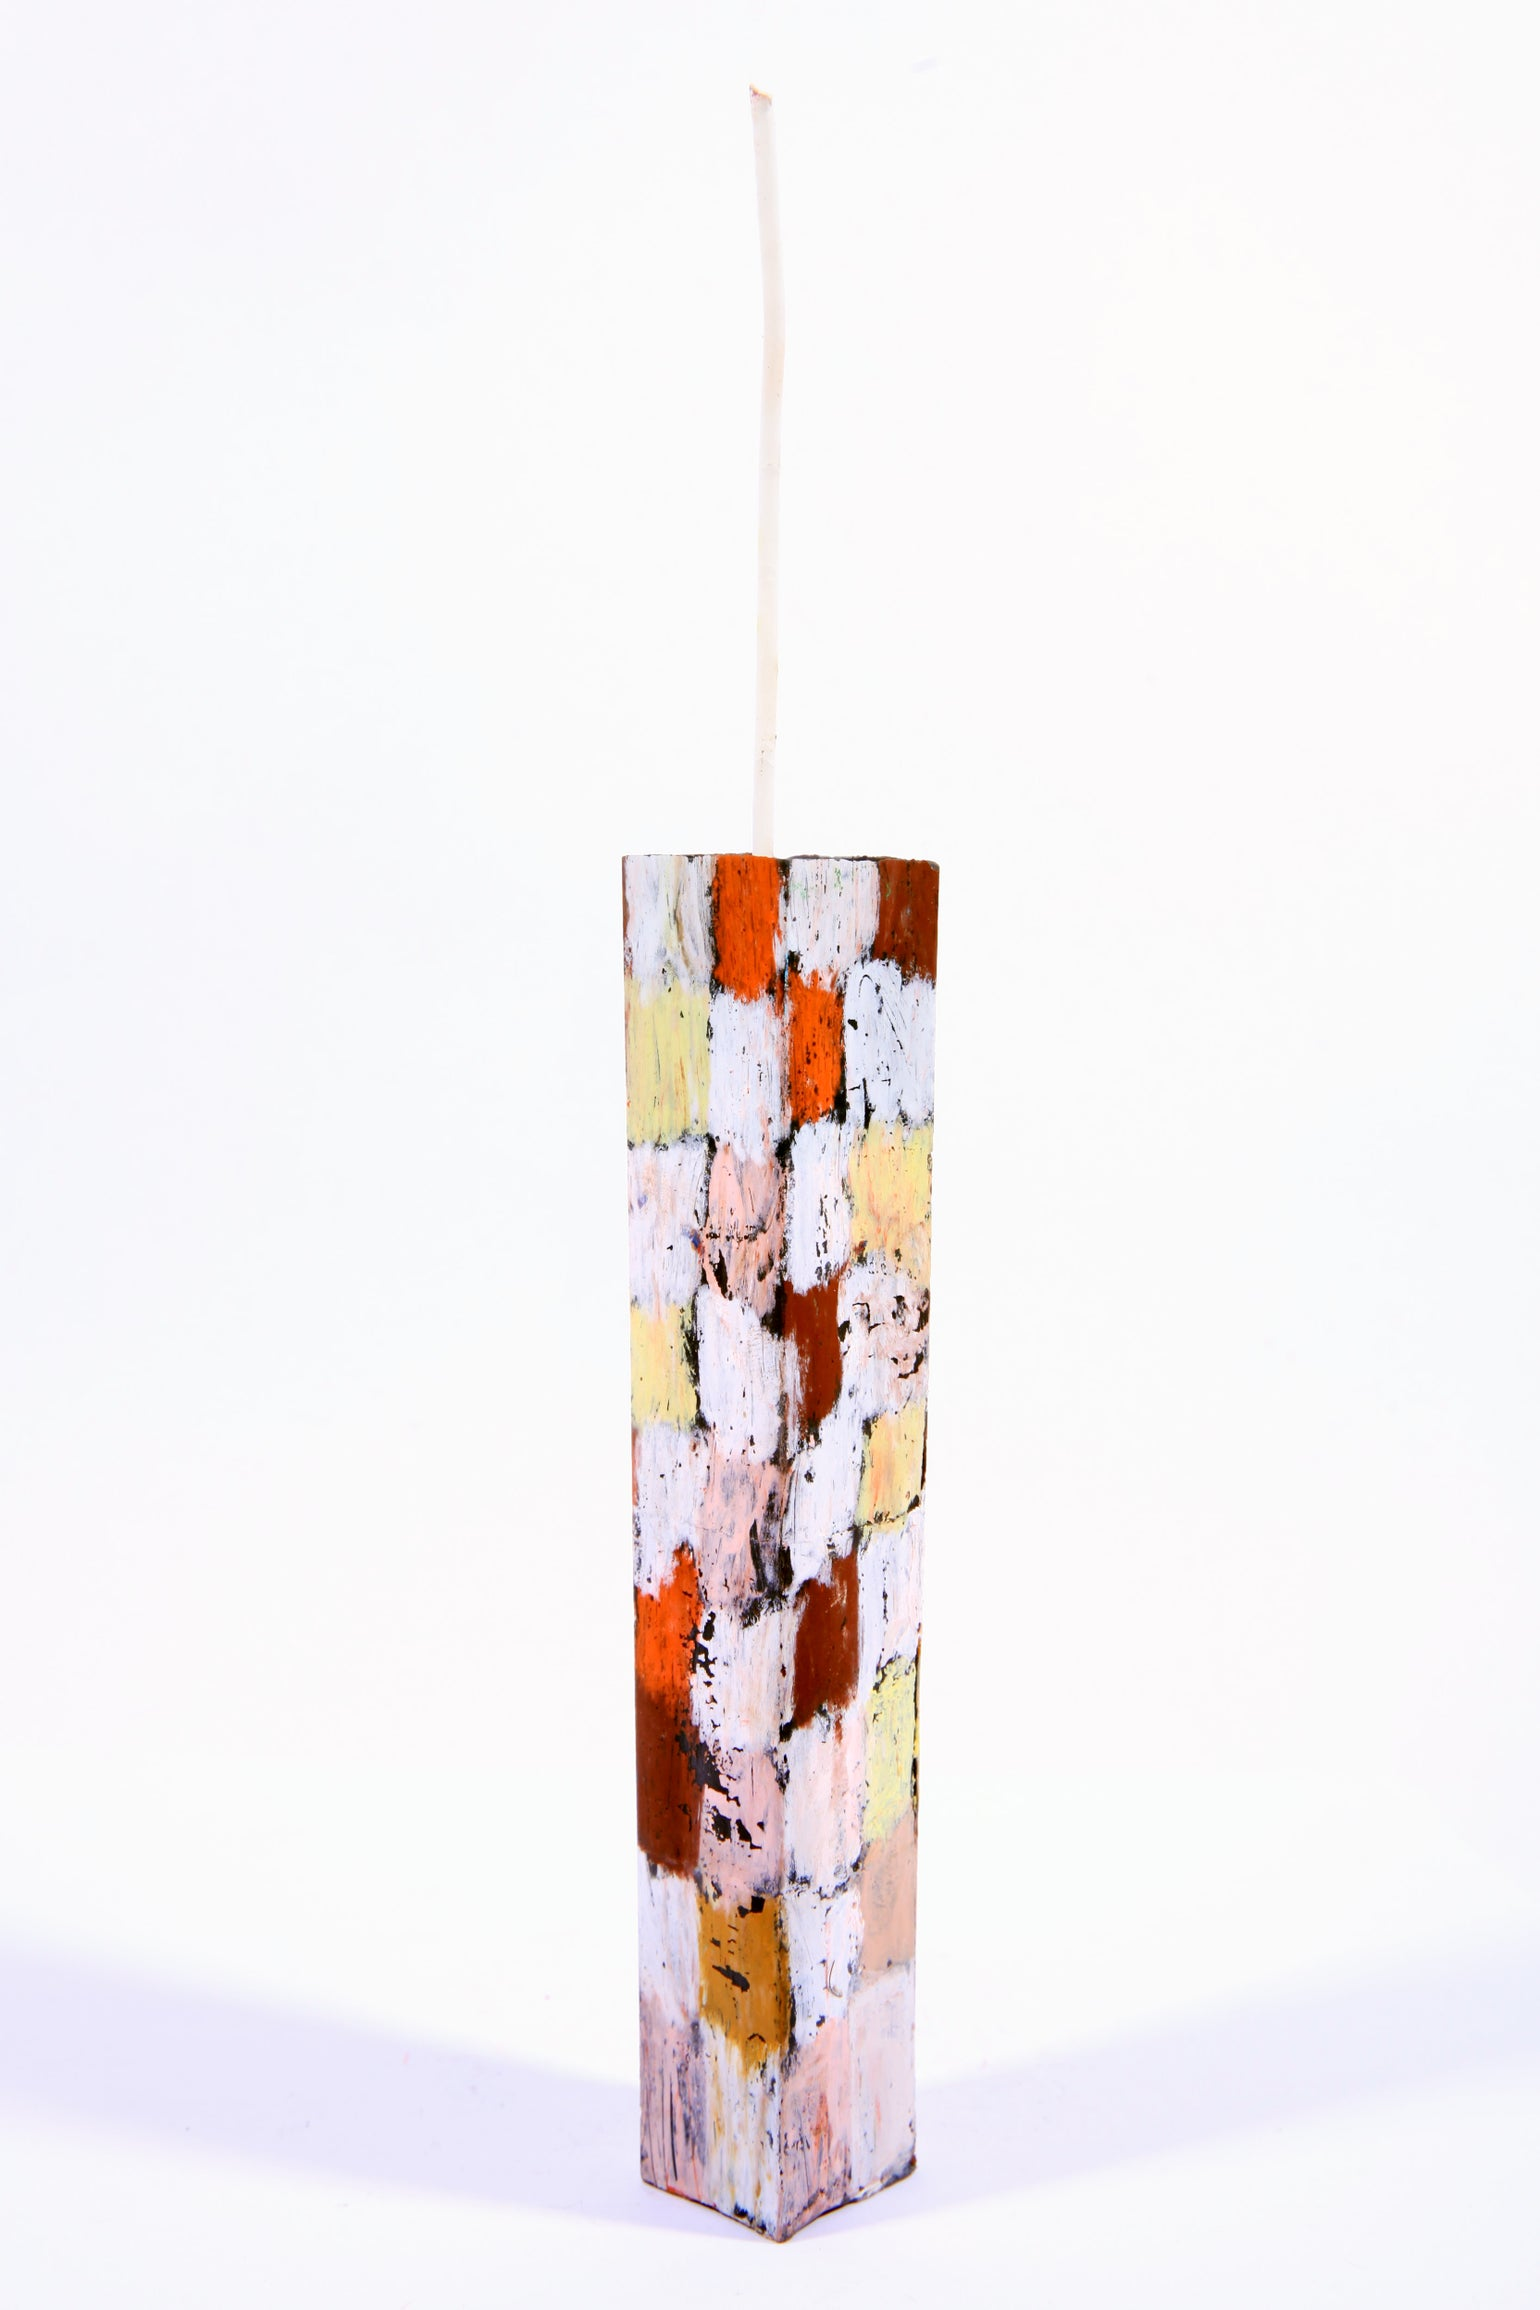 Image of Tower in clay pink, soft yellow, white, brown madder, sienna, light pink and red